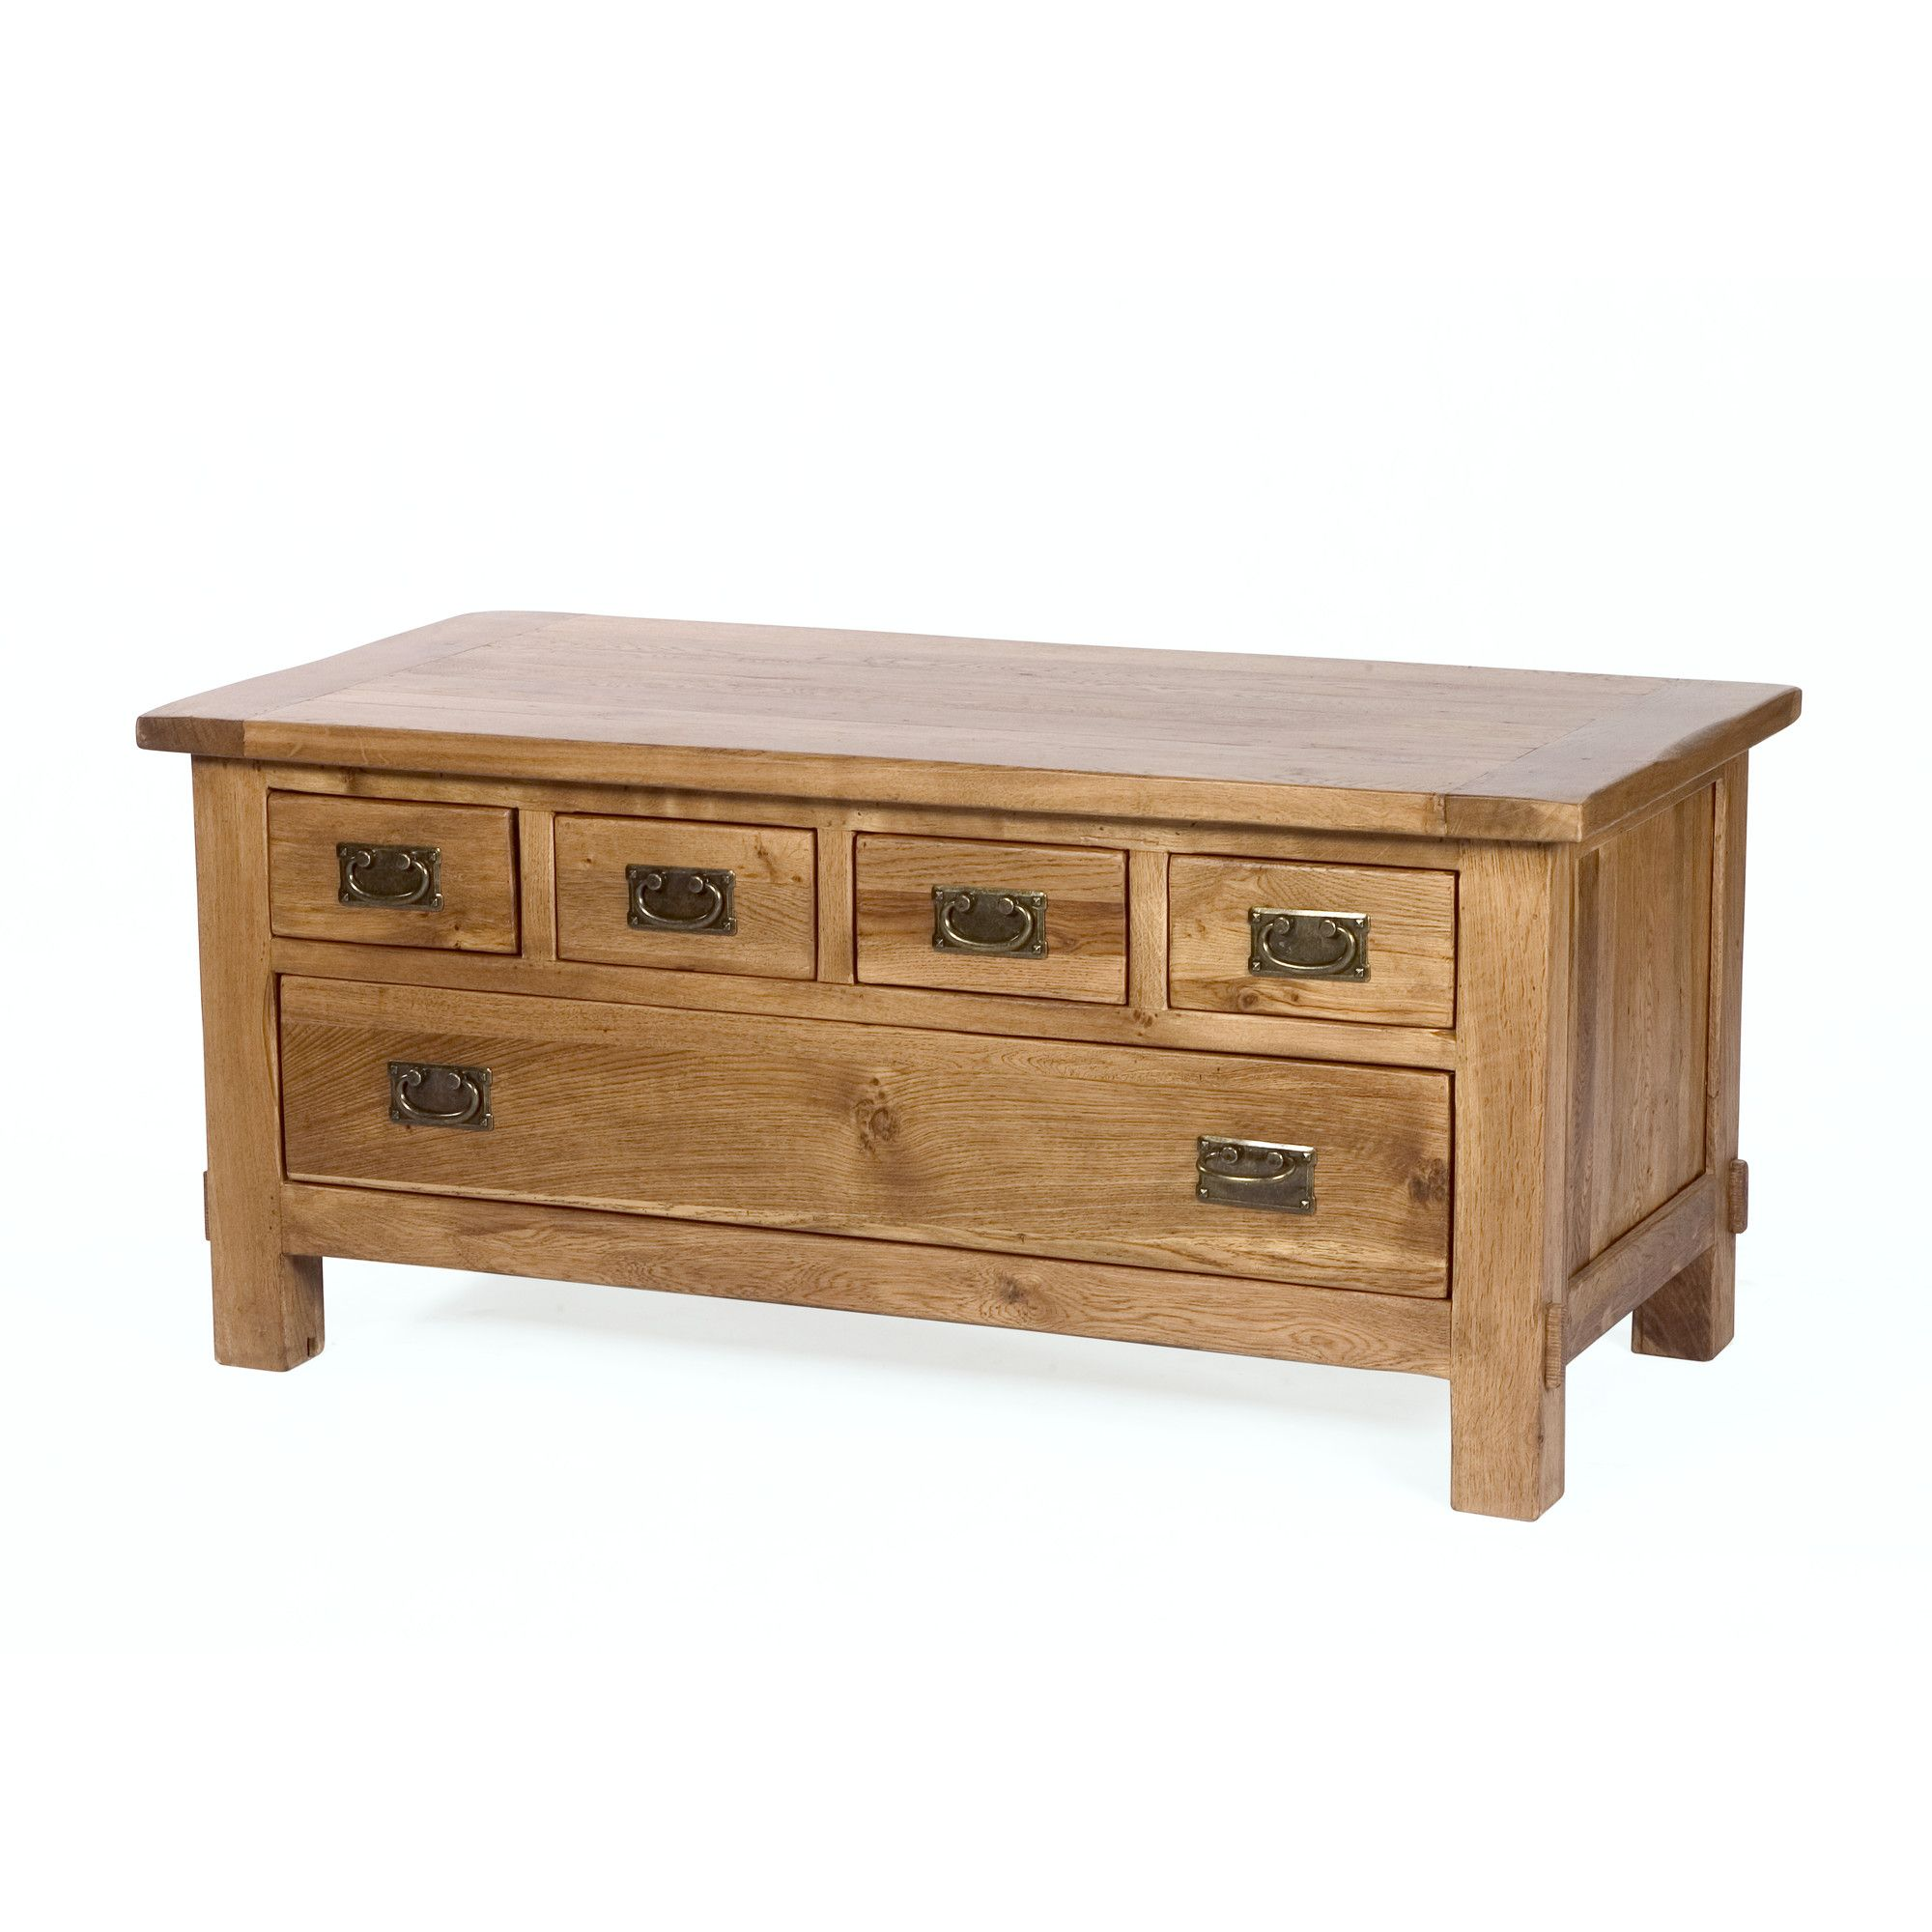 Wiseaction Riviera Coffee Table with Five Drawer at Tesco Direct